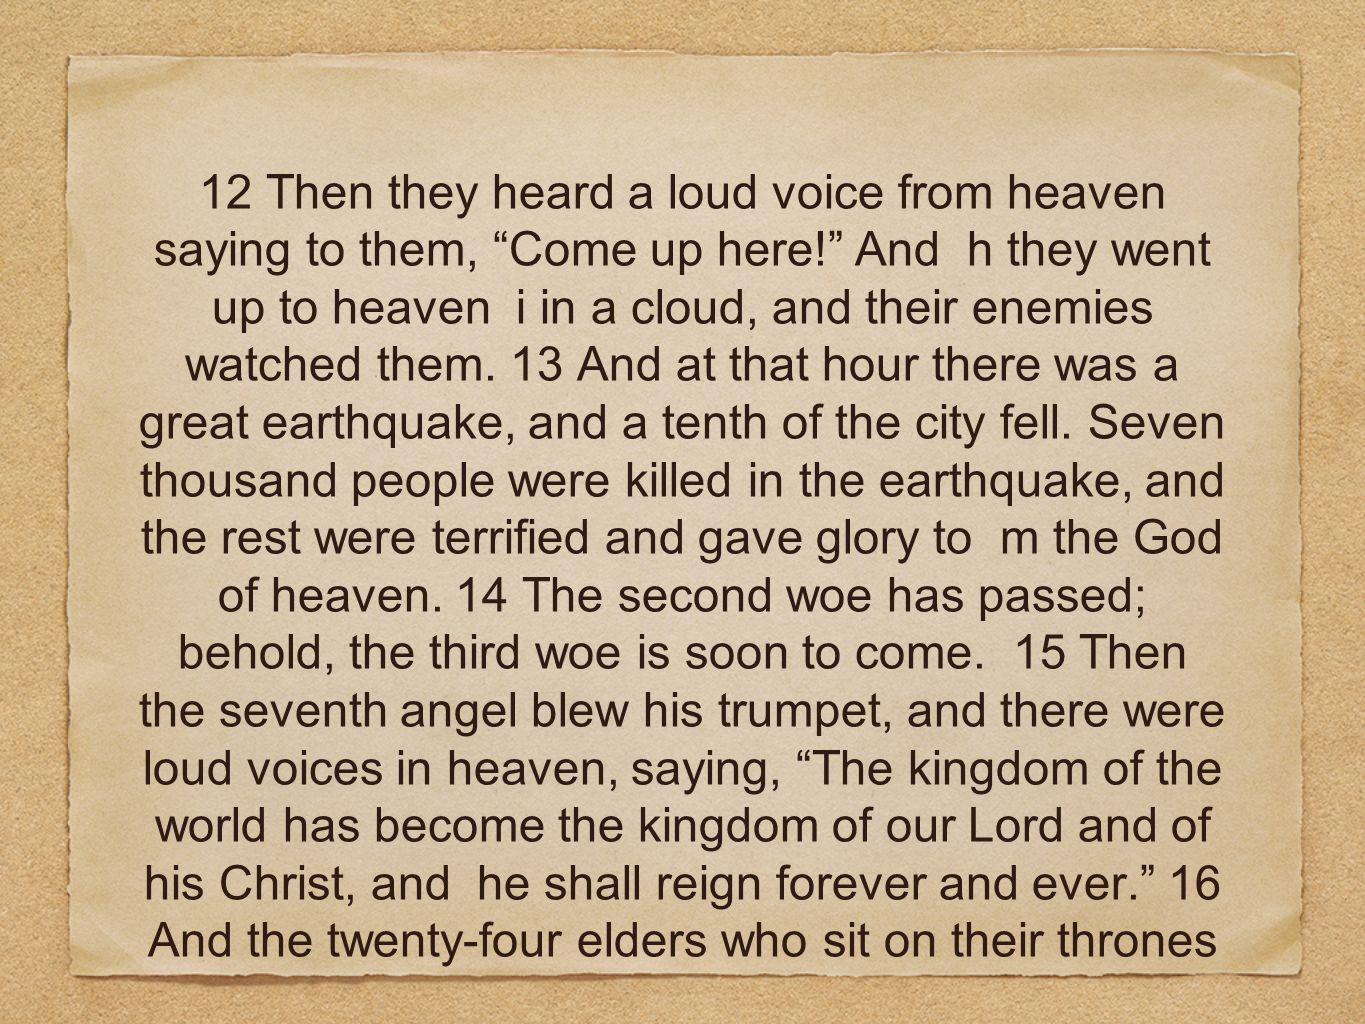 12 Then they heard a loud voice from heaven saying to them, Come up here! And h they went up to heaven i in a cloud, and their enemies watched them. 1